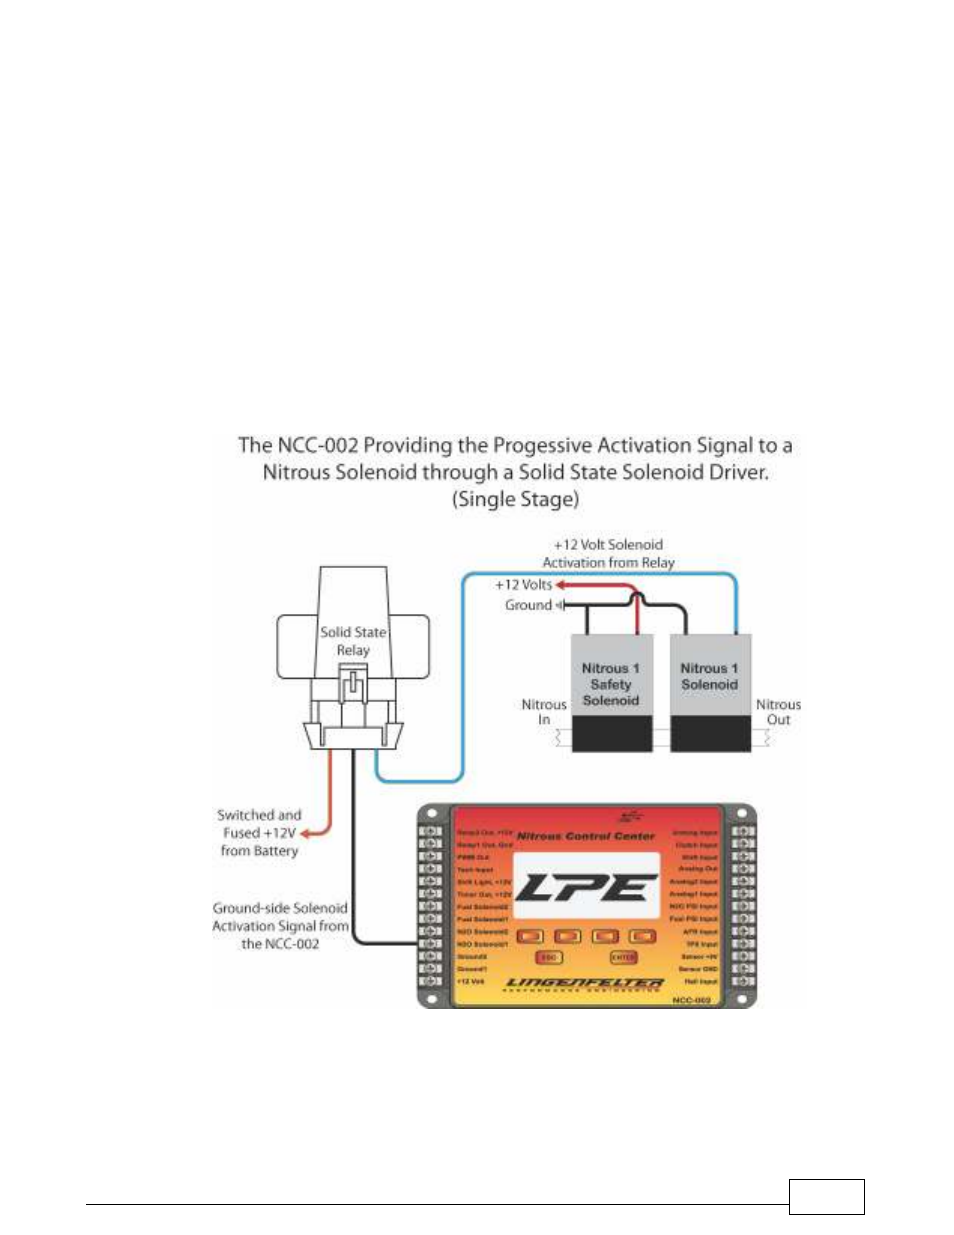 Nitrous Relay Wiring Diagram Nos Lingenfelter L460240000 Ncc 002 Control Center V15 User Manual Page